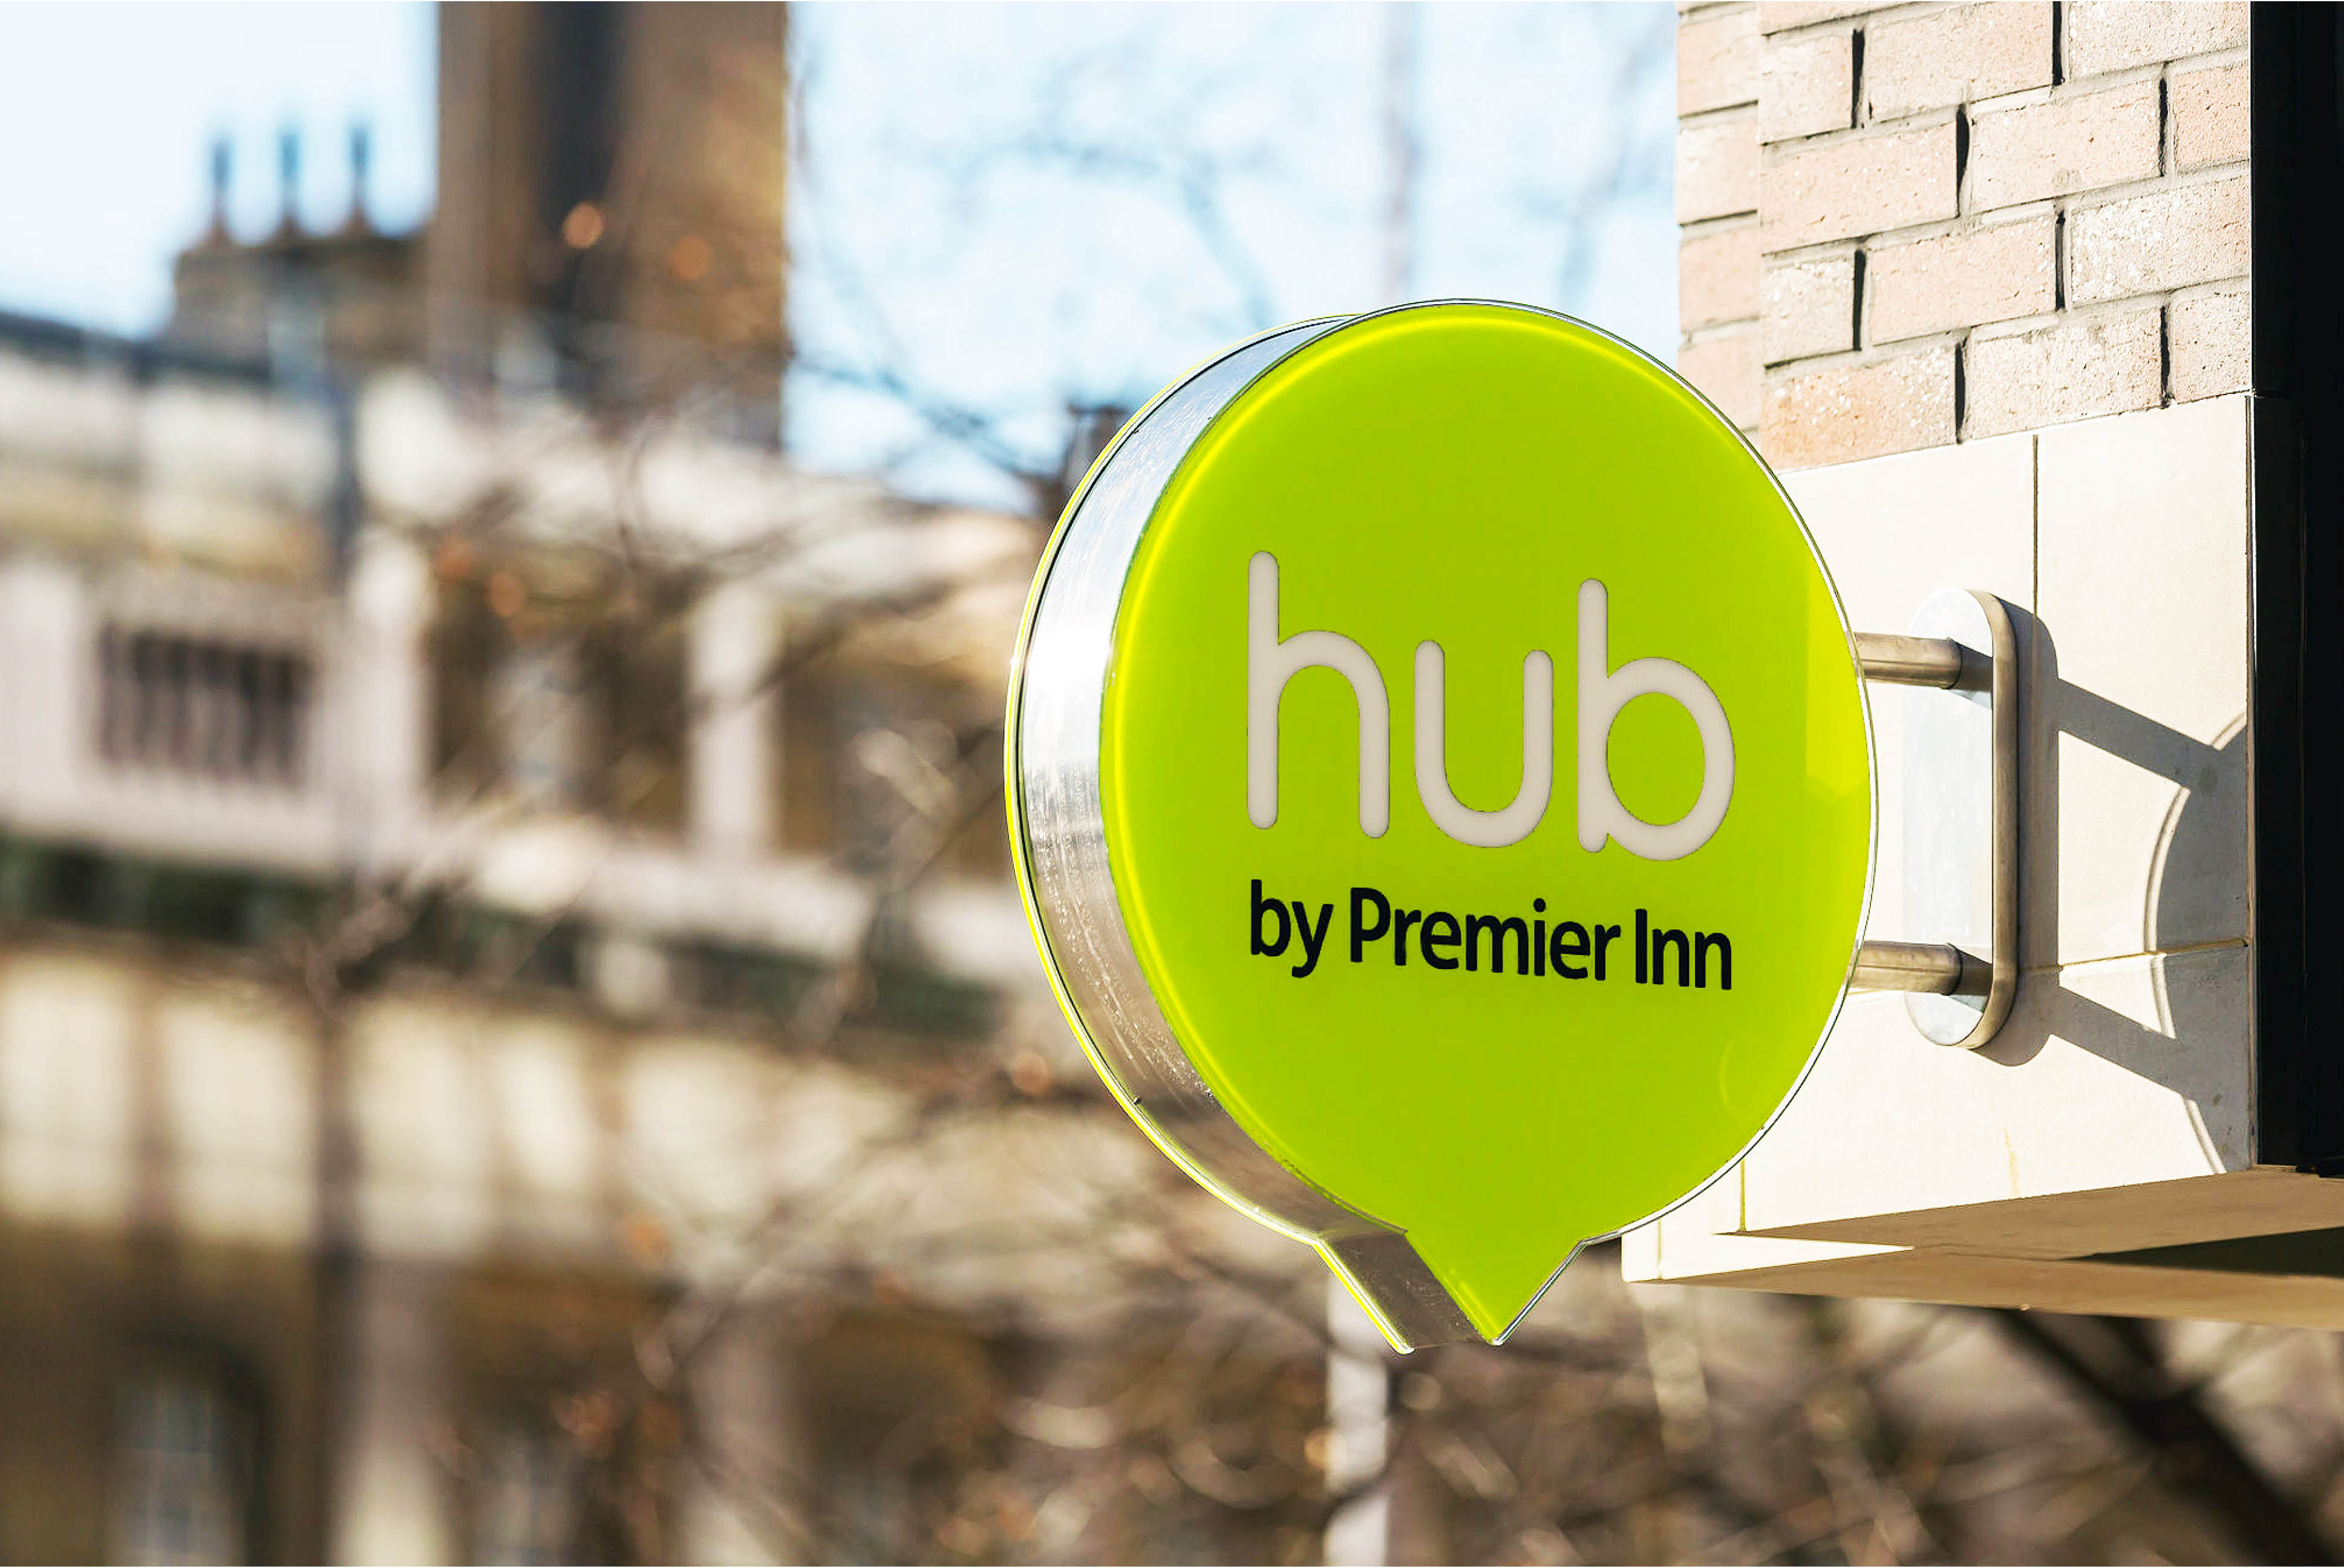 Hub by Premier Inn Signage | Independent Marketing Branding | IM London